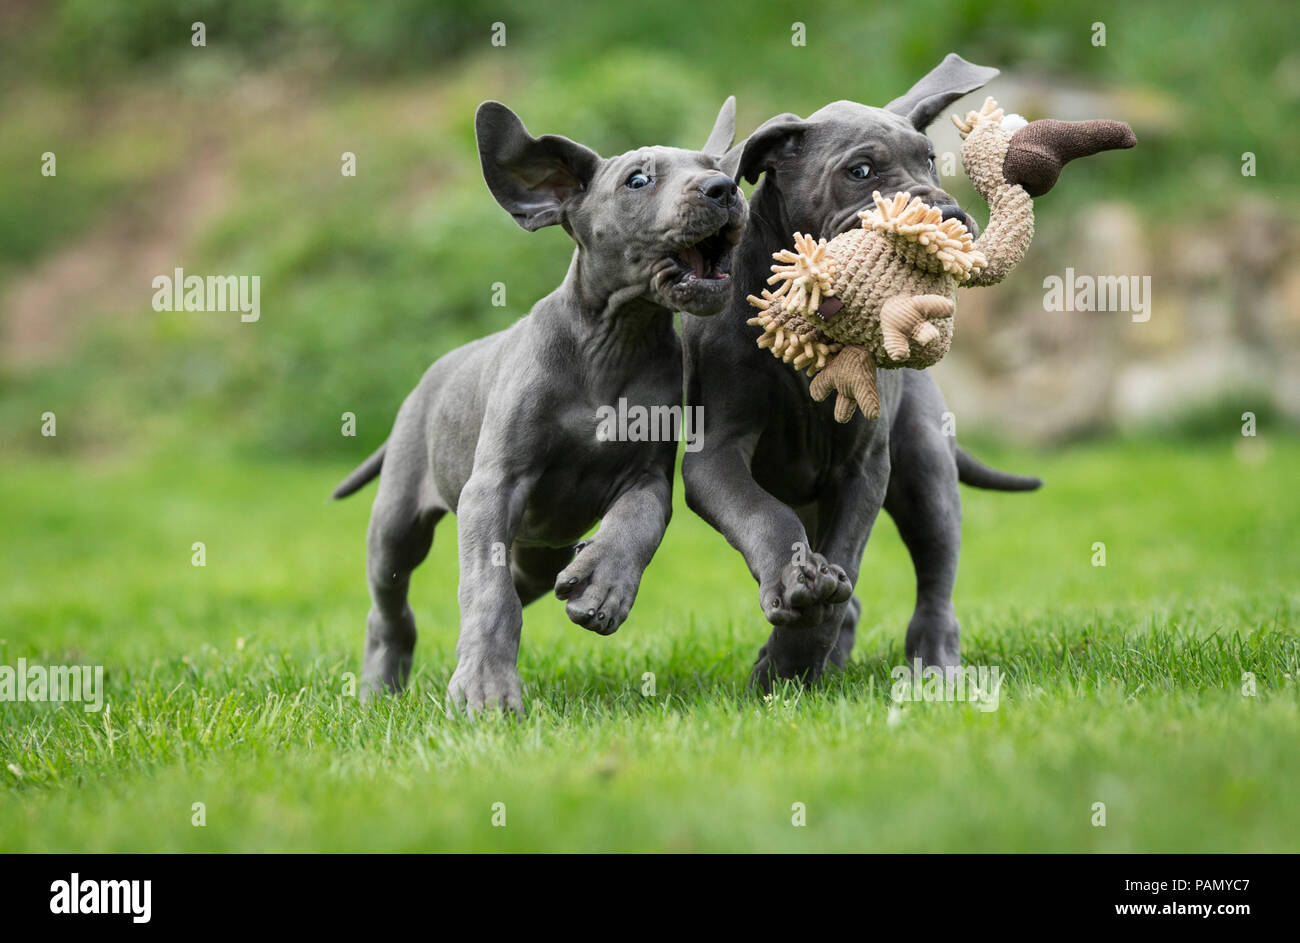 Great Dane. Two puppies tugging at a plush toy. Germany - Stock Image